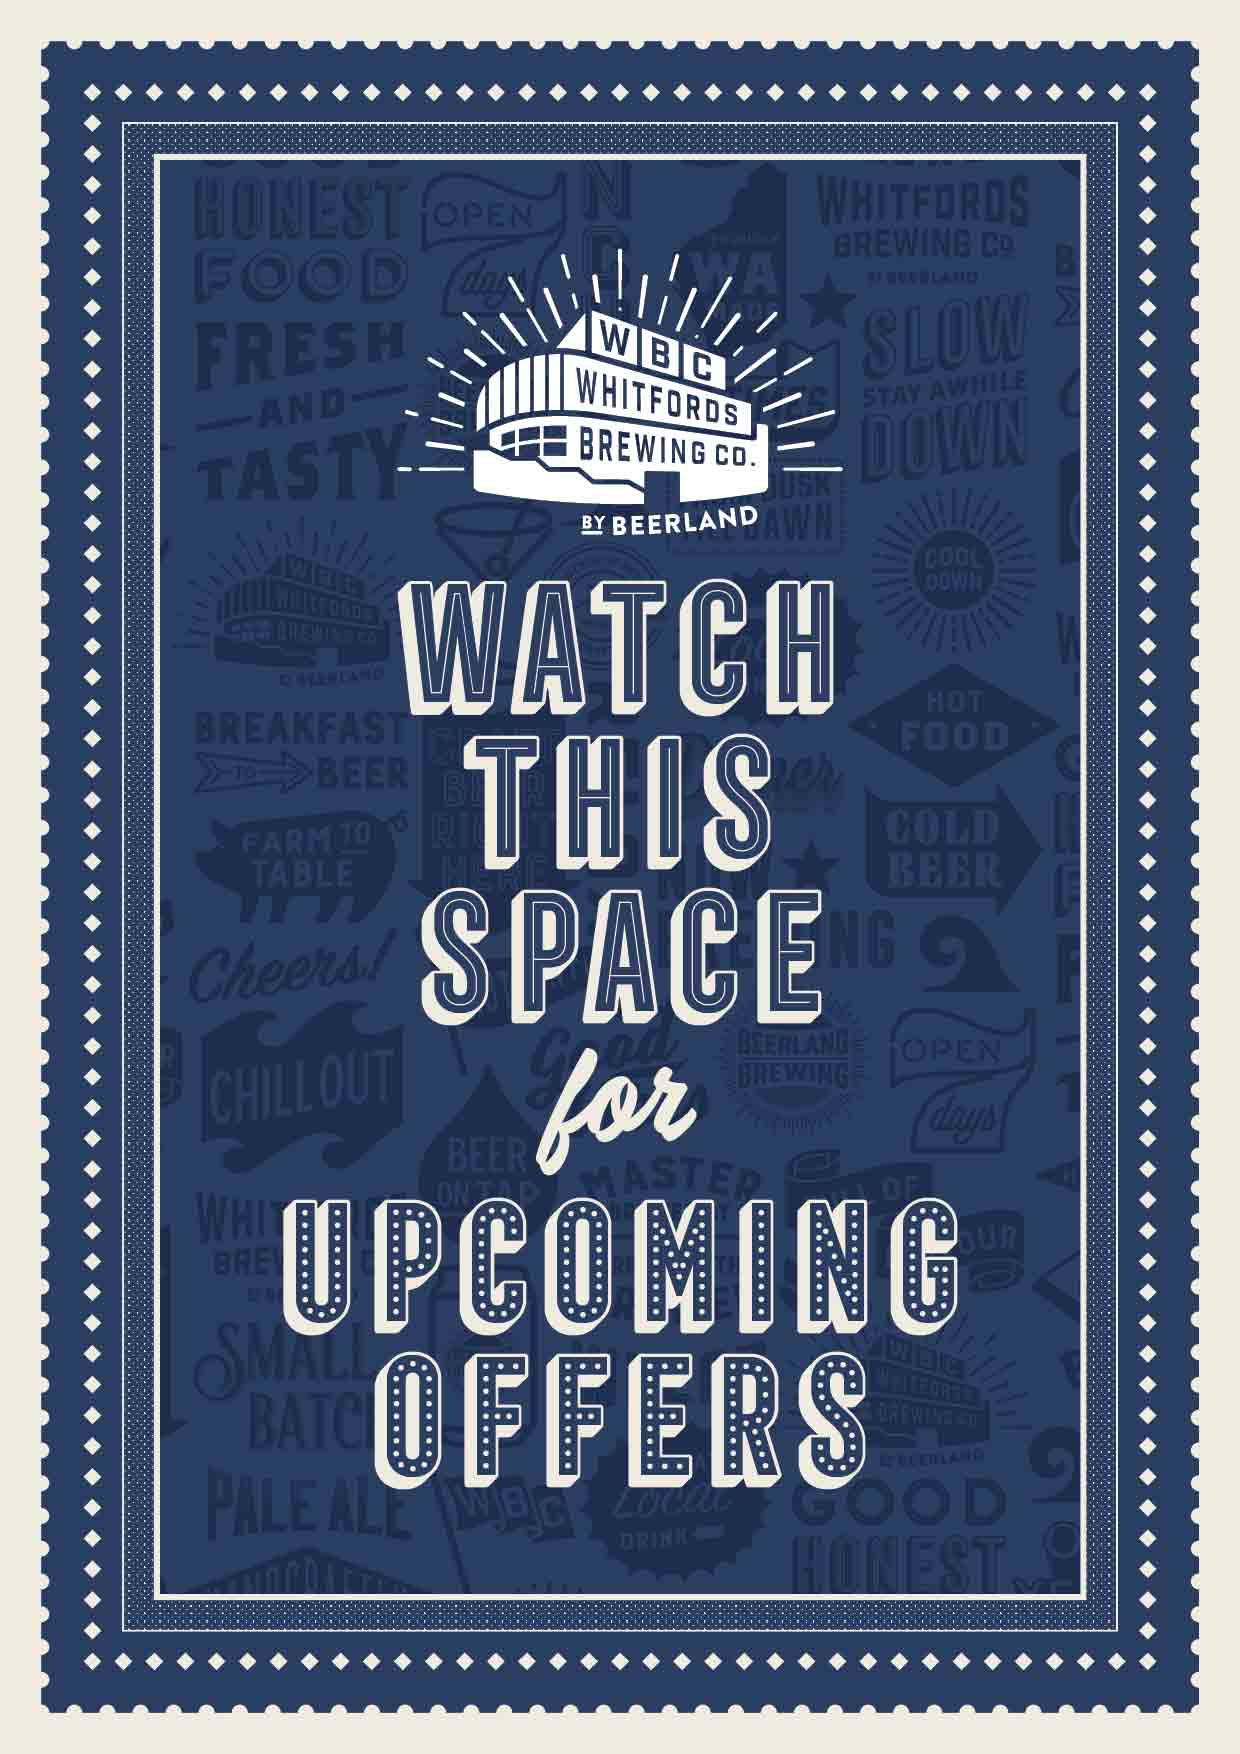 Watch this space for upcoming offers